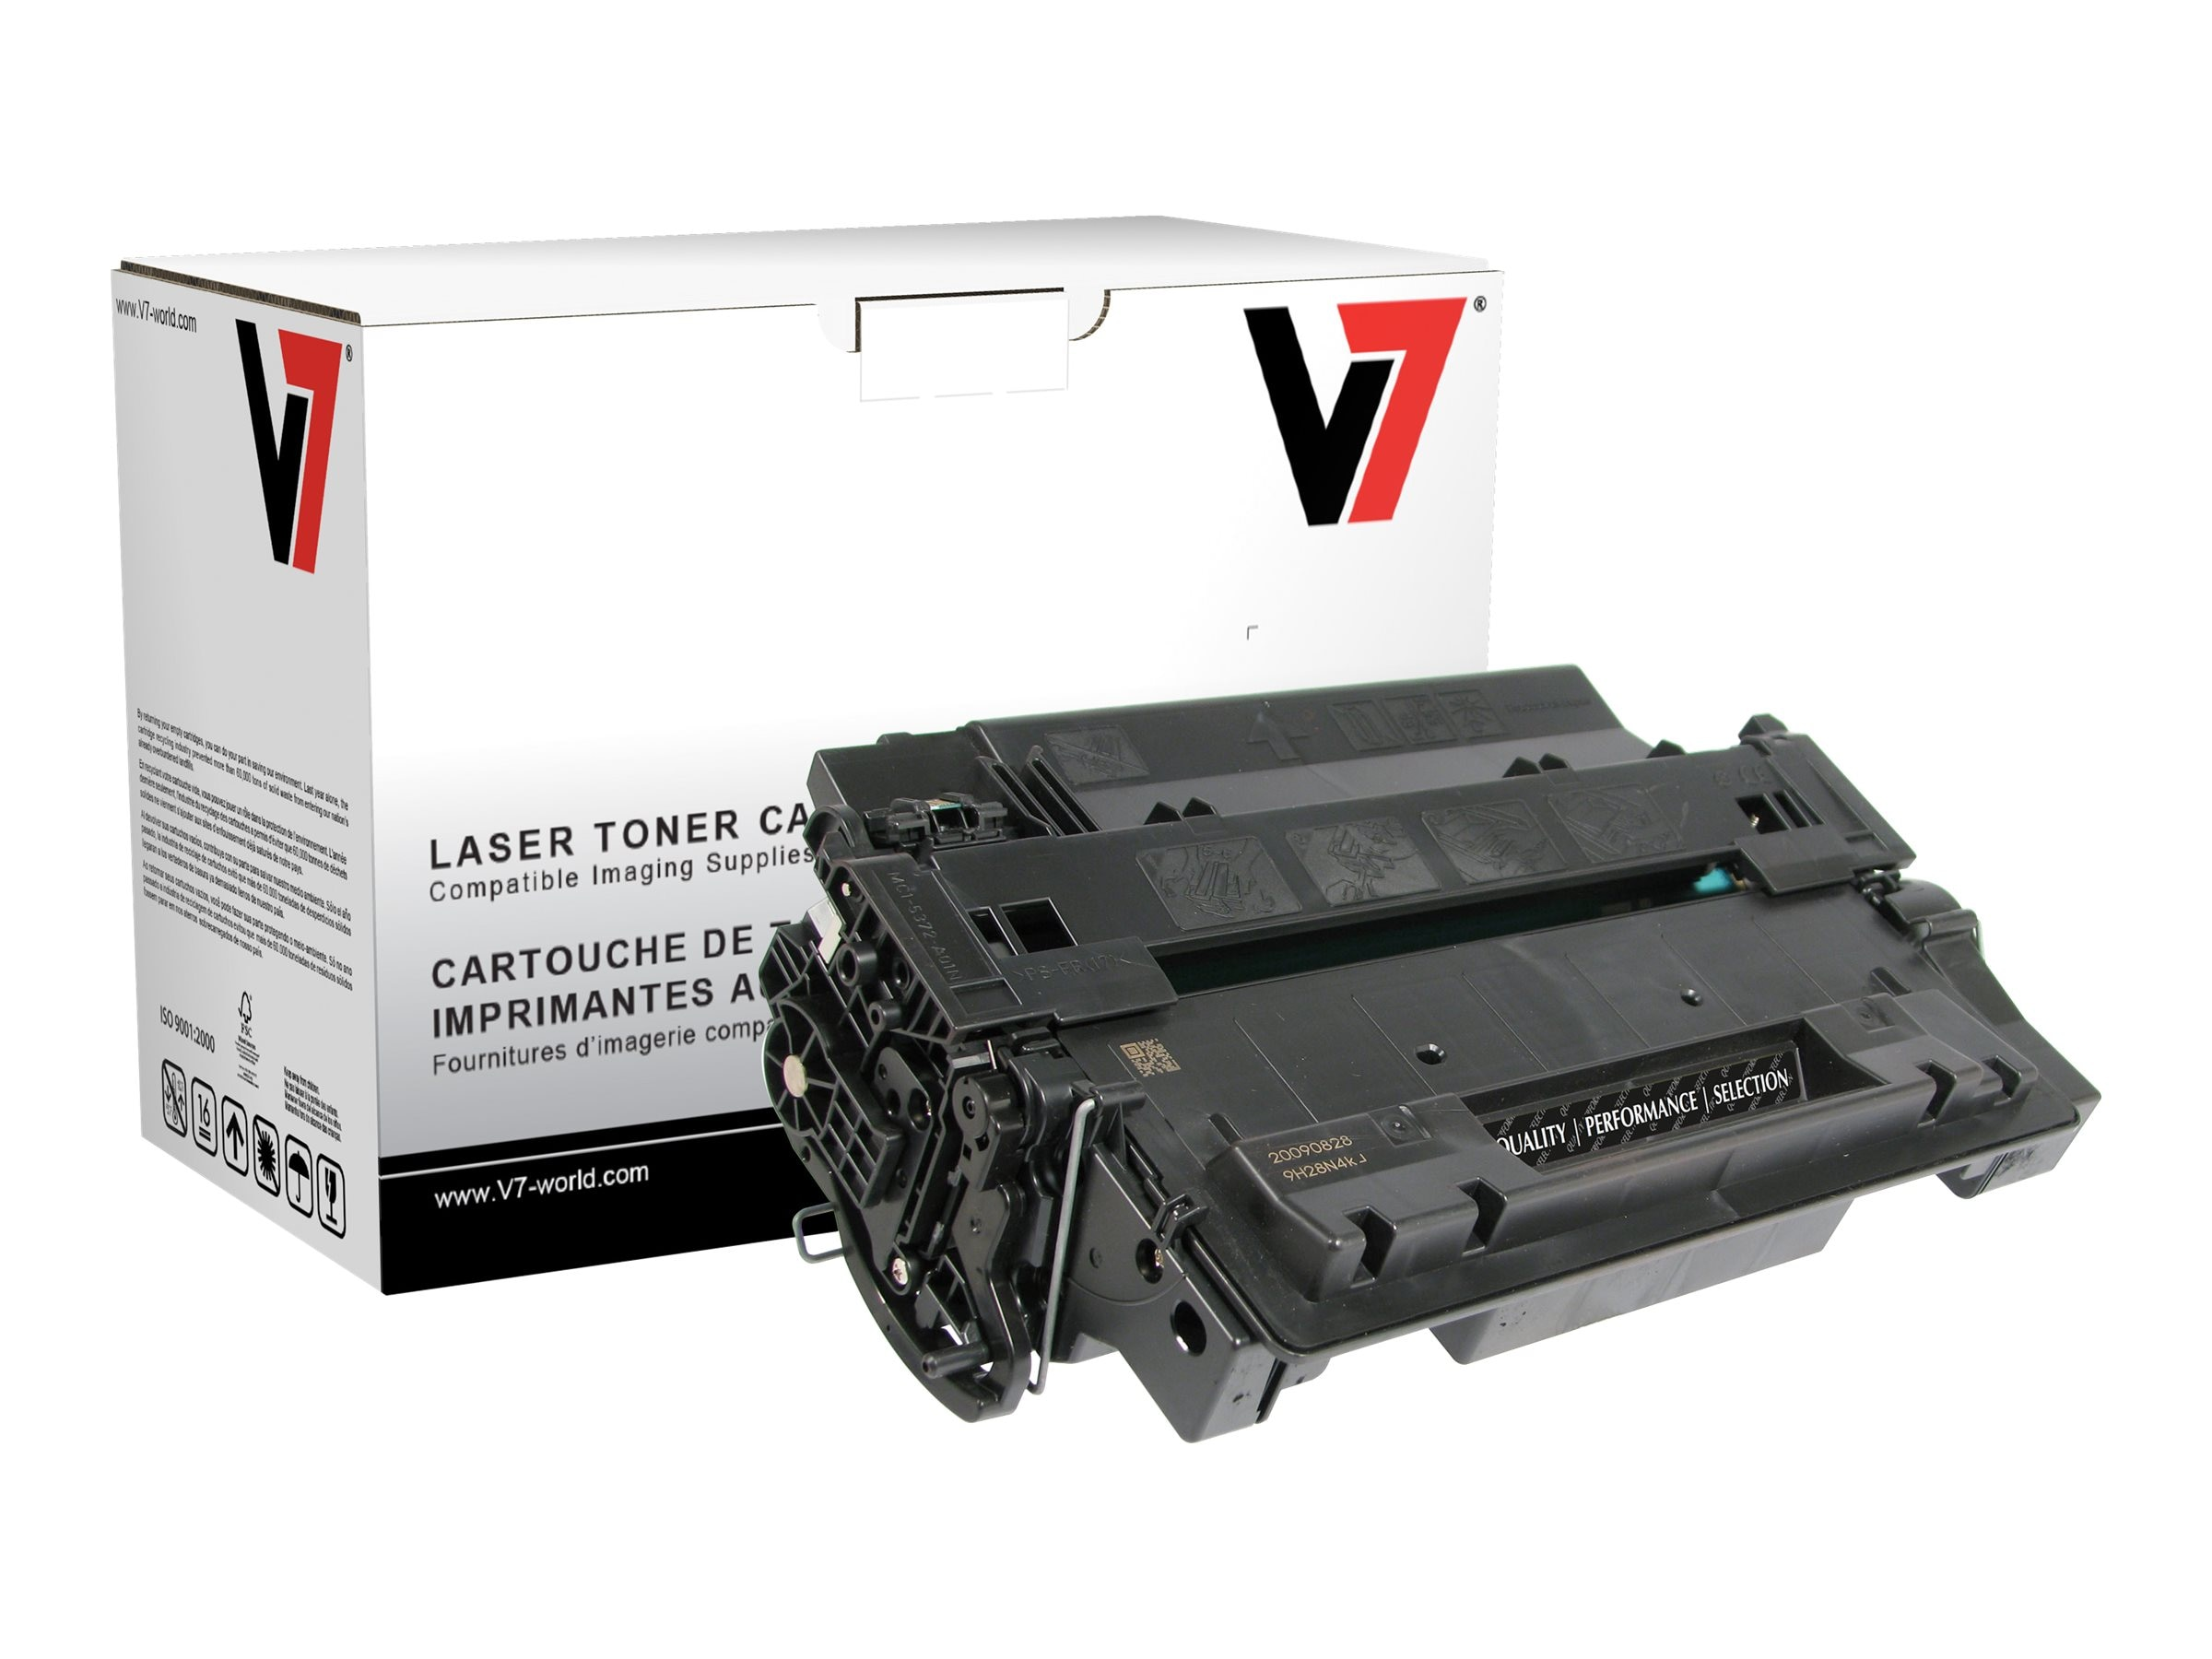 V7 CE255X Black High Yield Toner Cartridge for HP LaserJet P3015 (TAA Compliant)